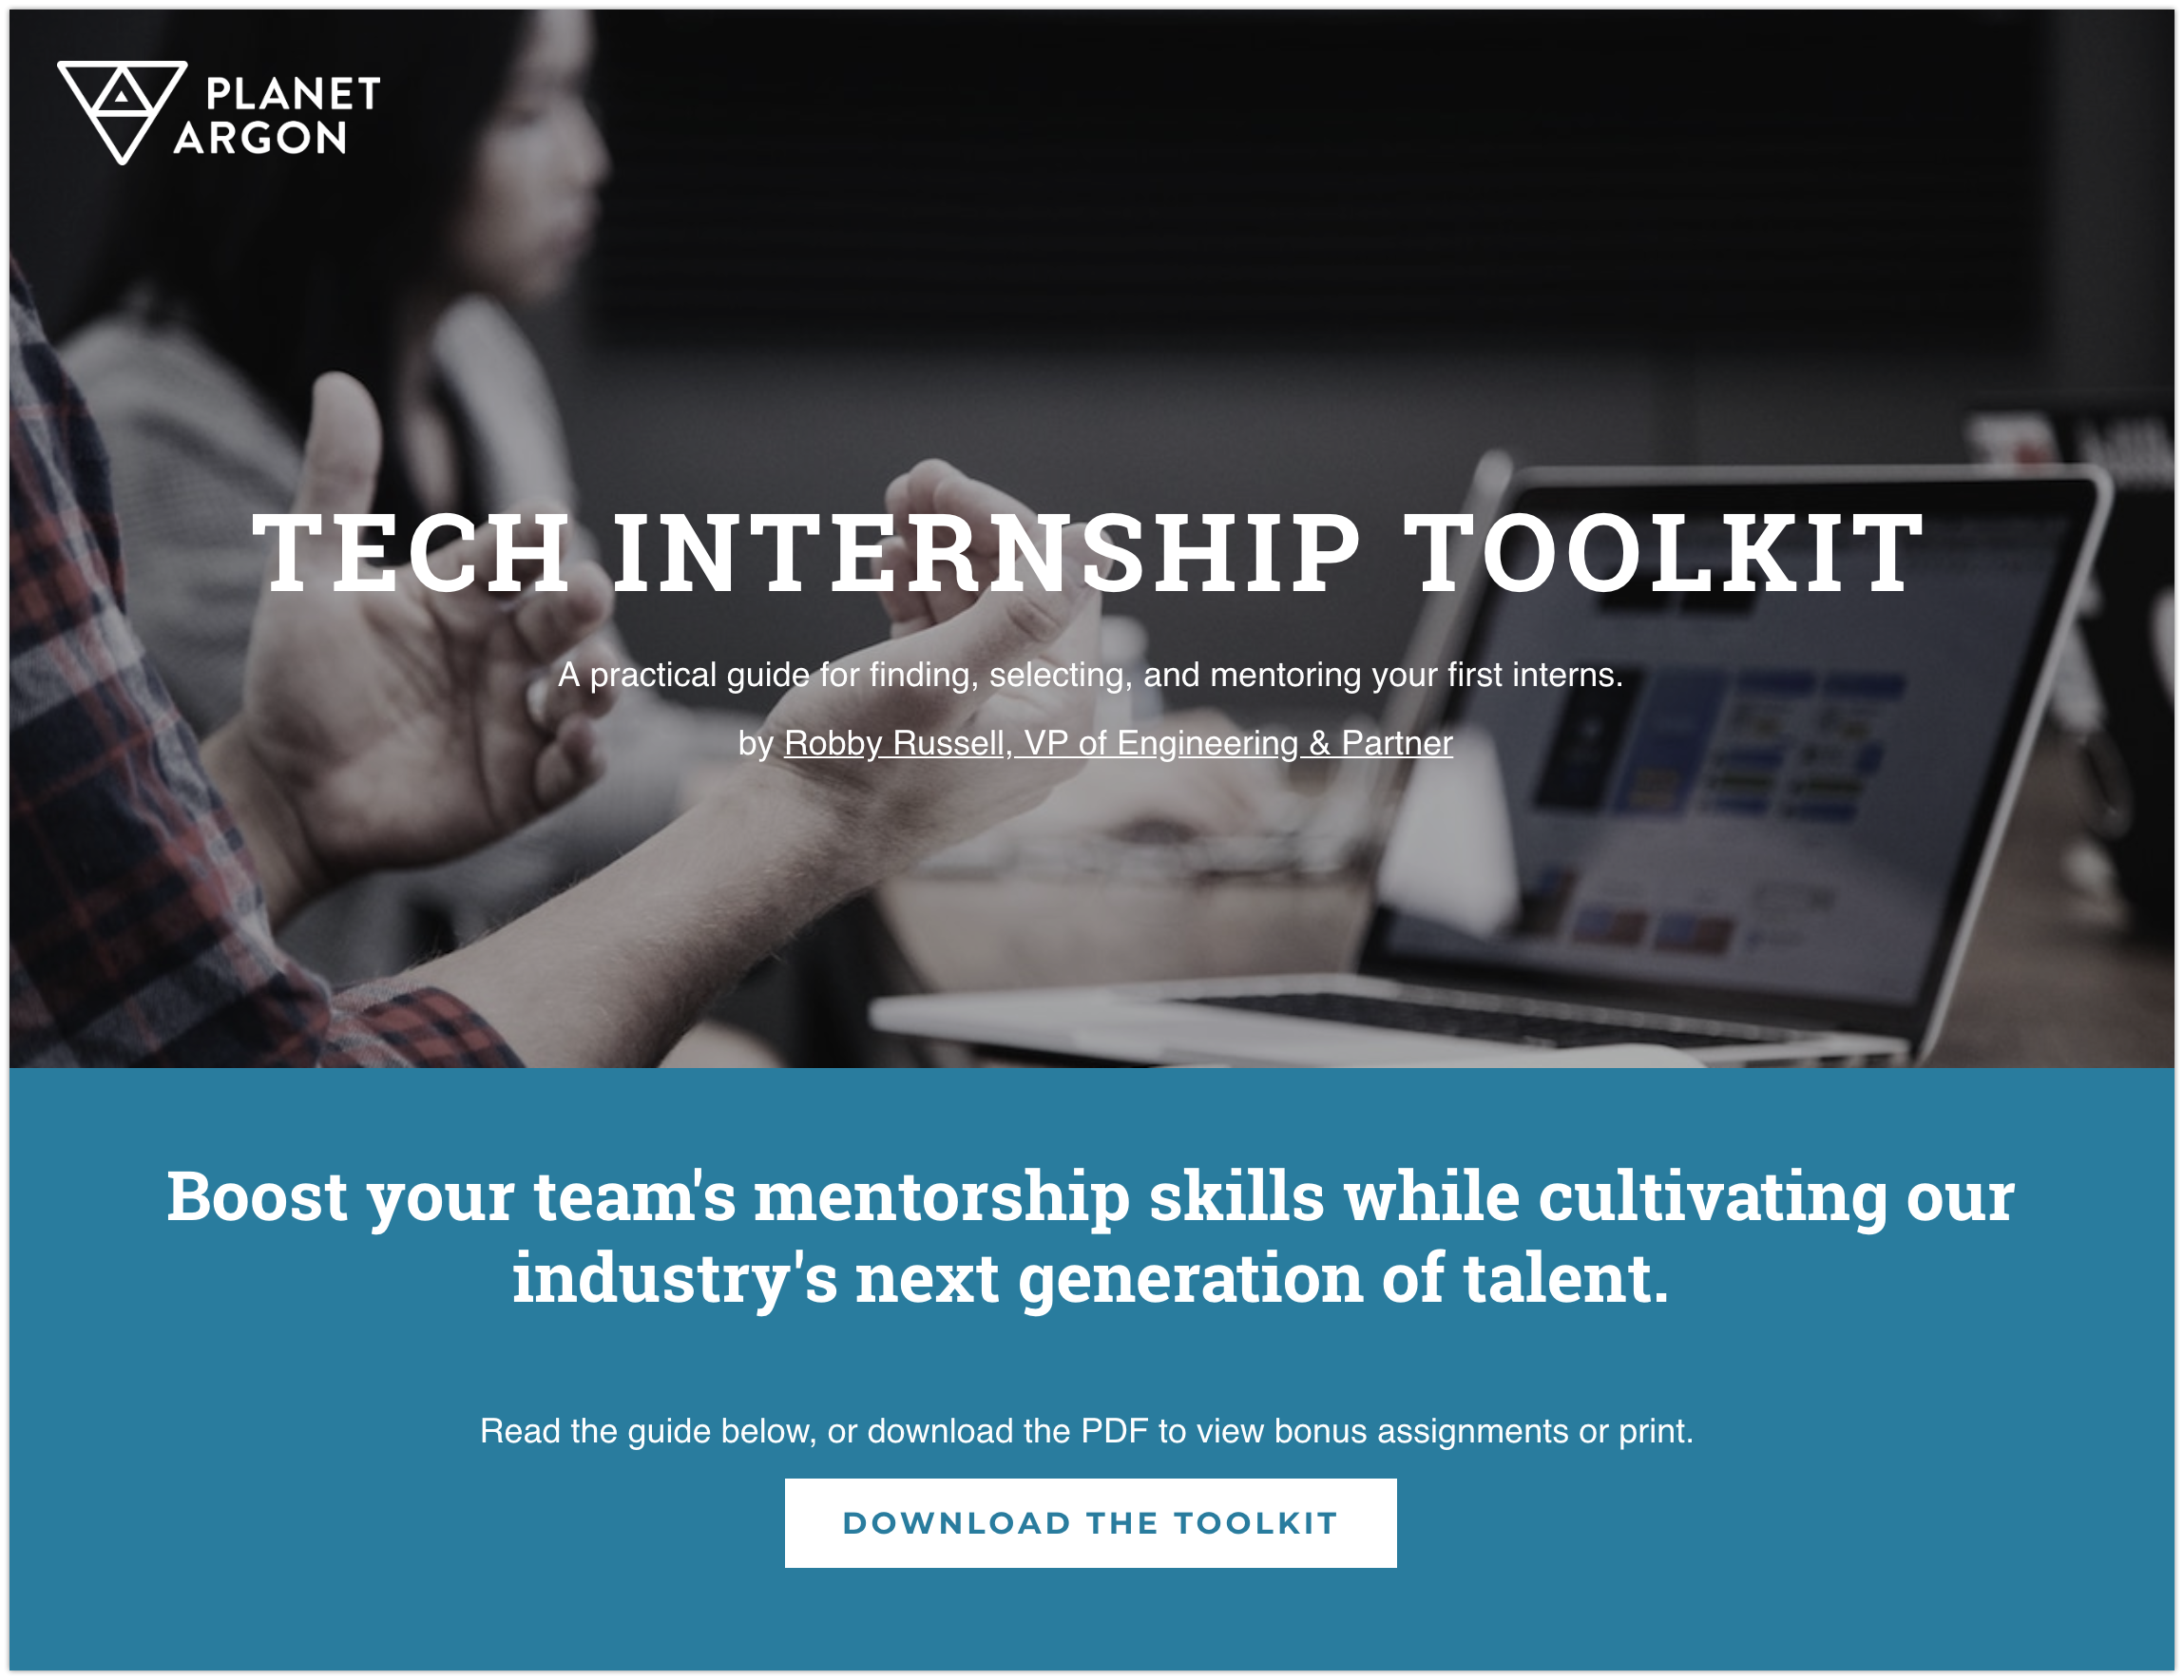 Go download our tech internship toolkit — it's free!